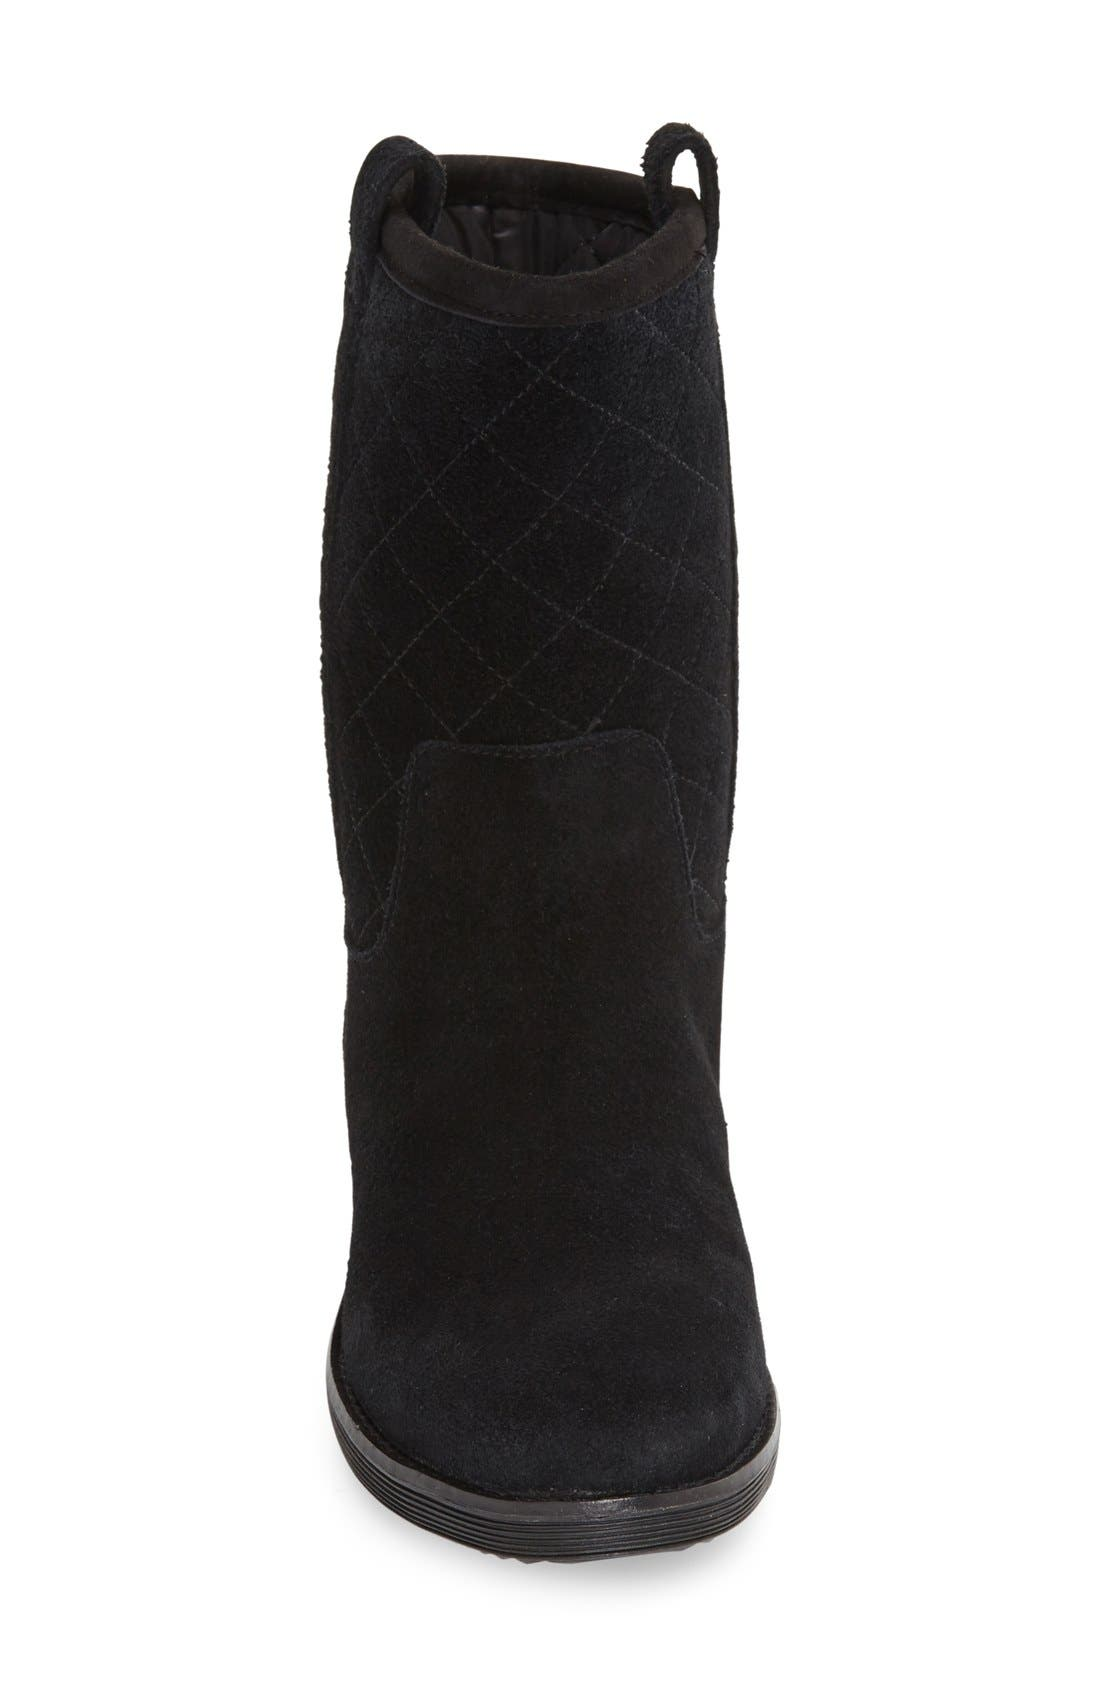 'Roper' Waterproof Boot,                             Alternate thumbnail 3, color,                             Black Suede